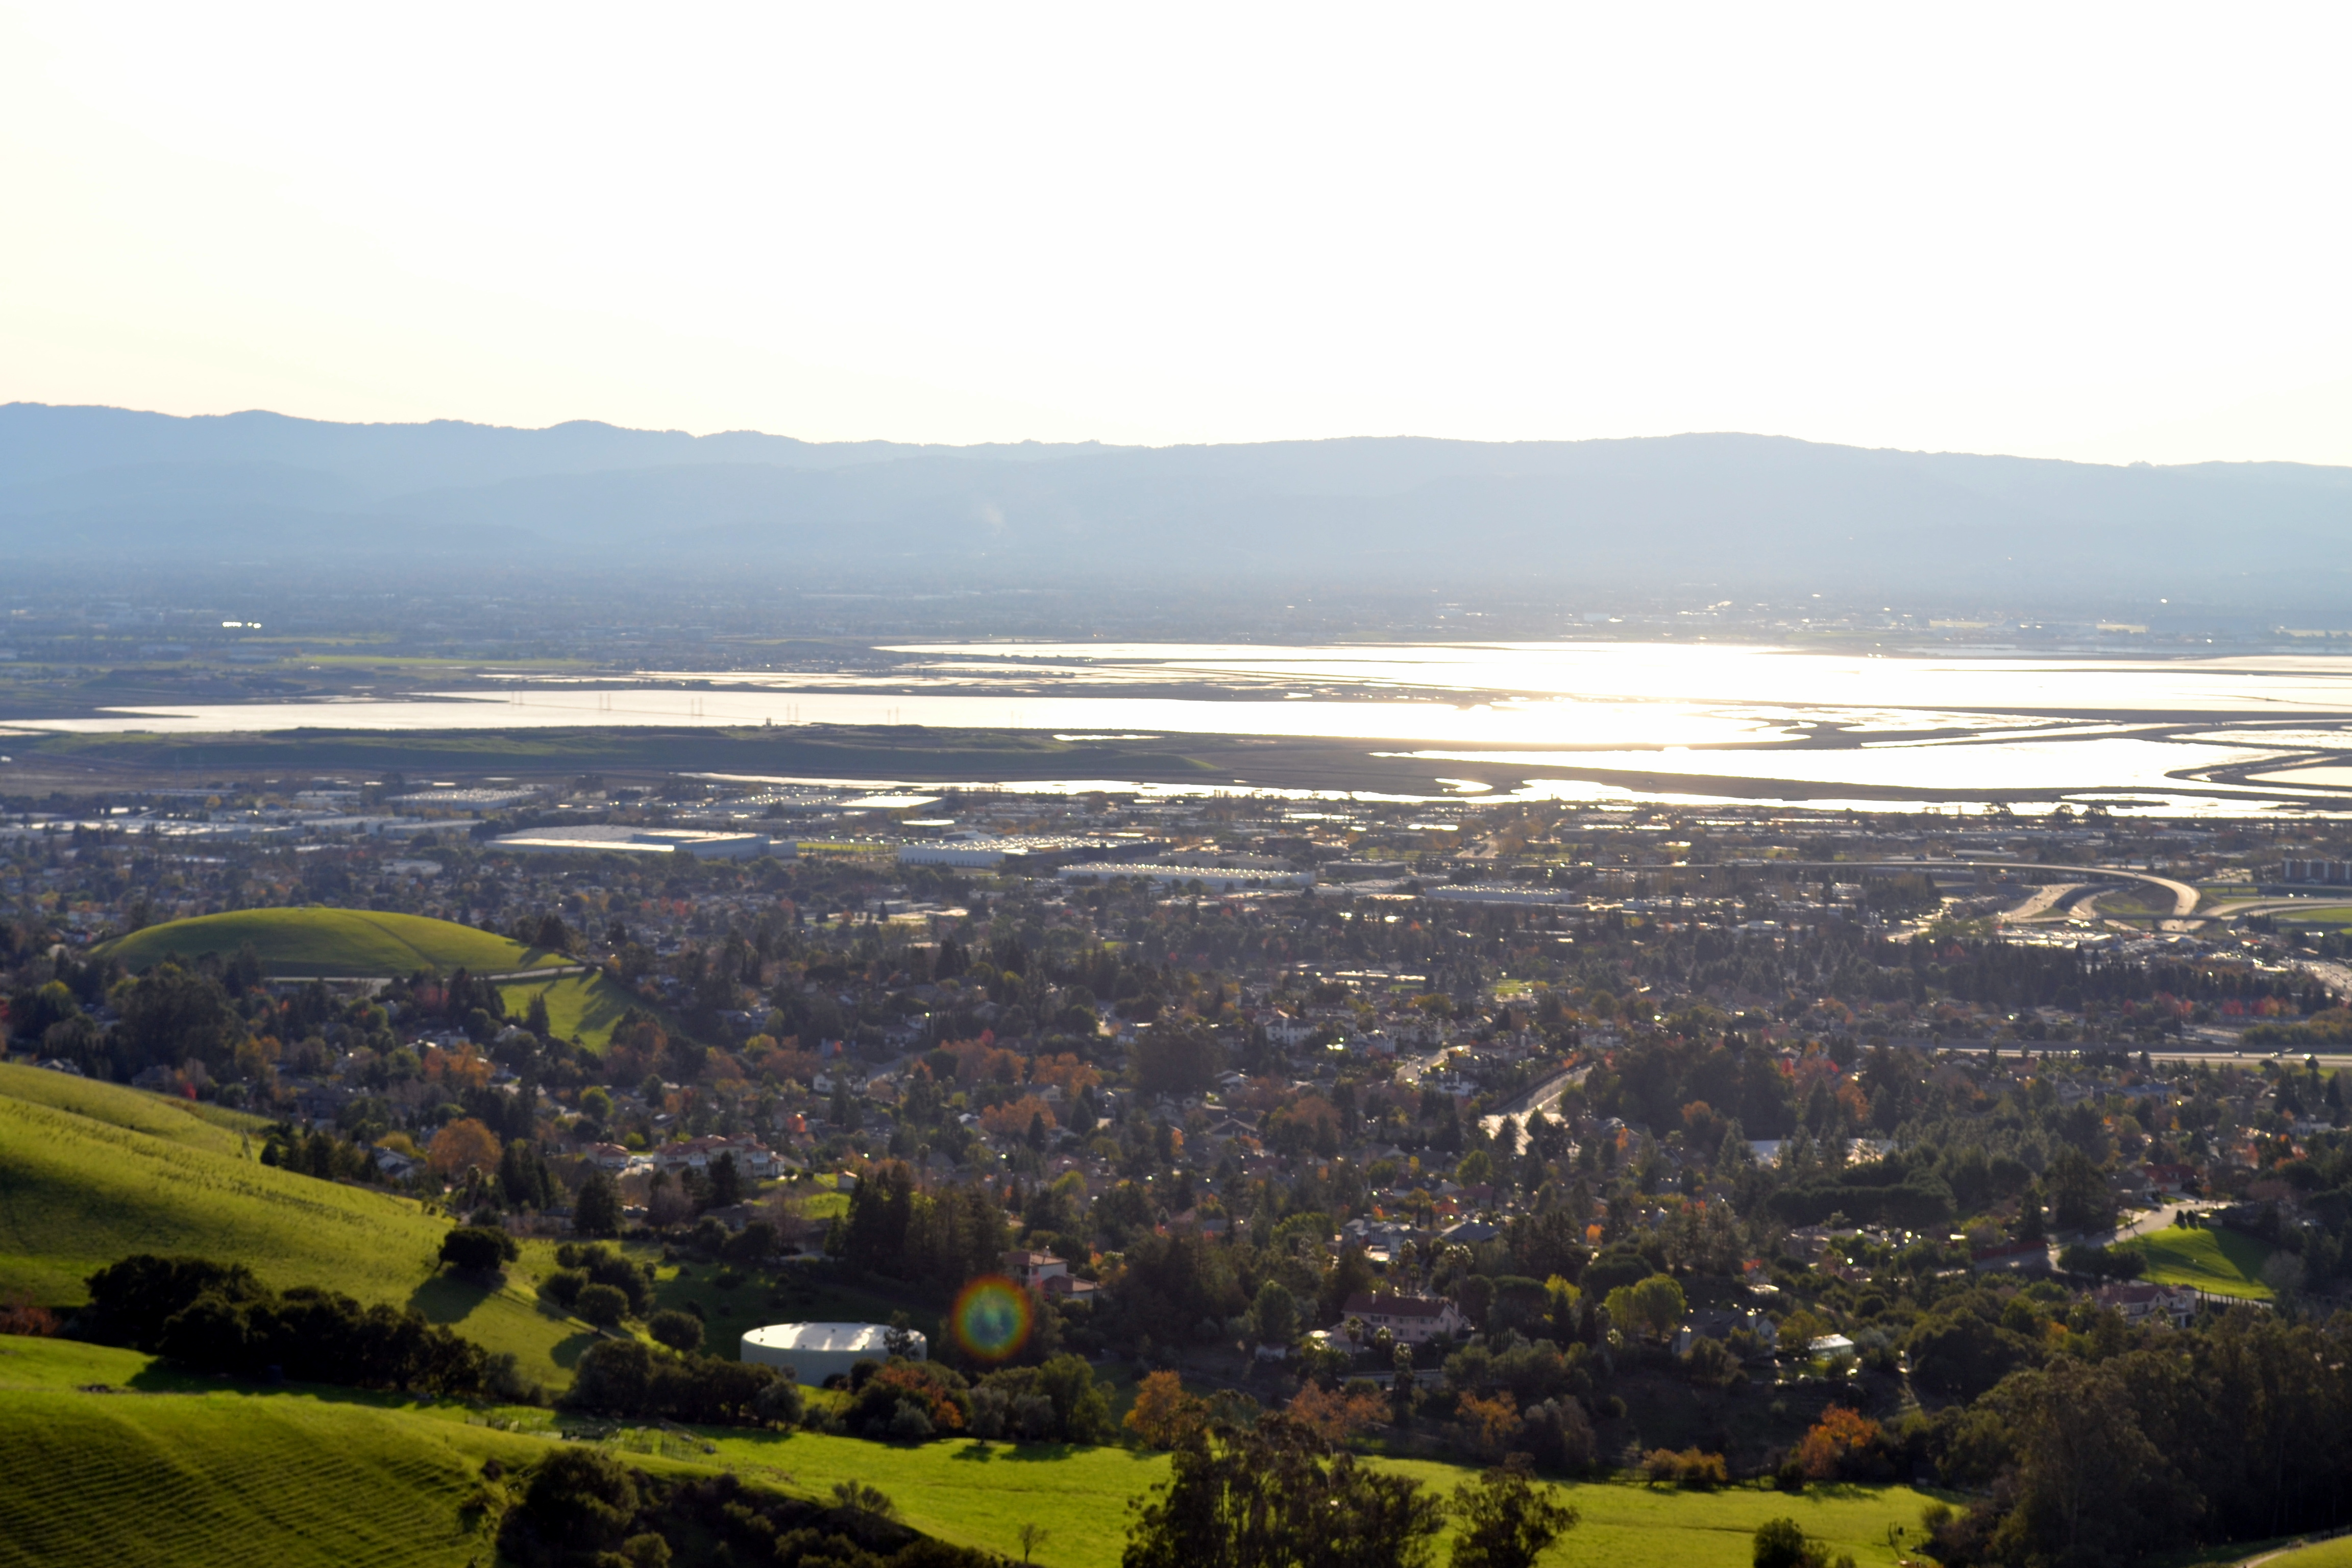 File:South San Francisco Bay Viewed From Mission Peak In Fremont,  California.JPG